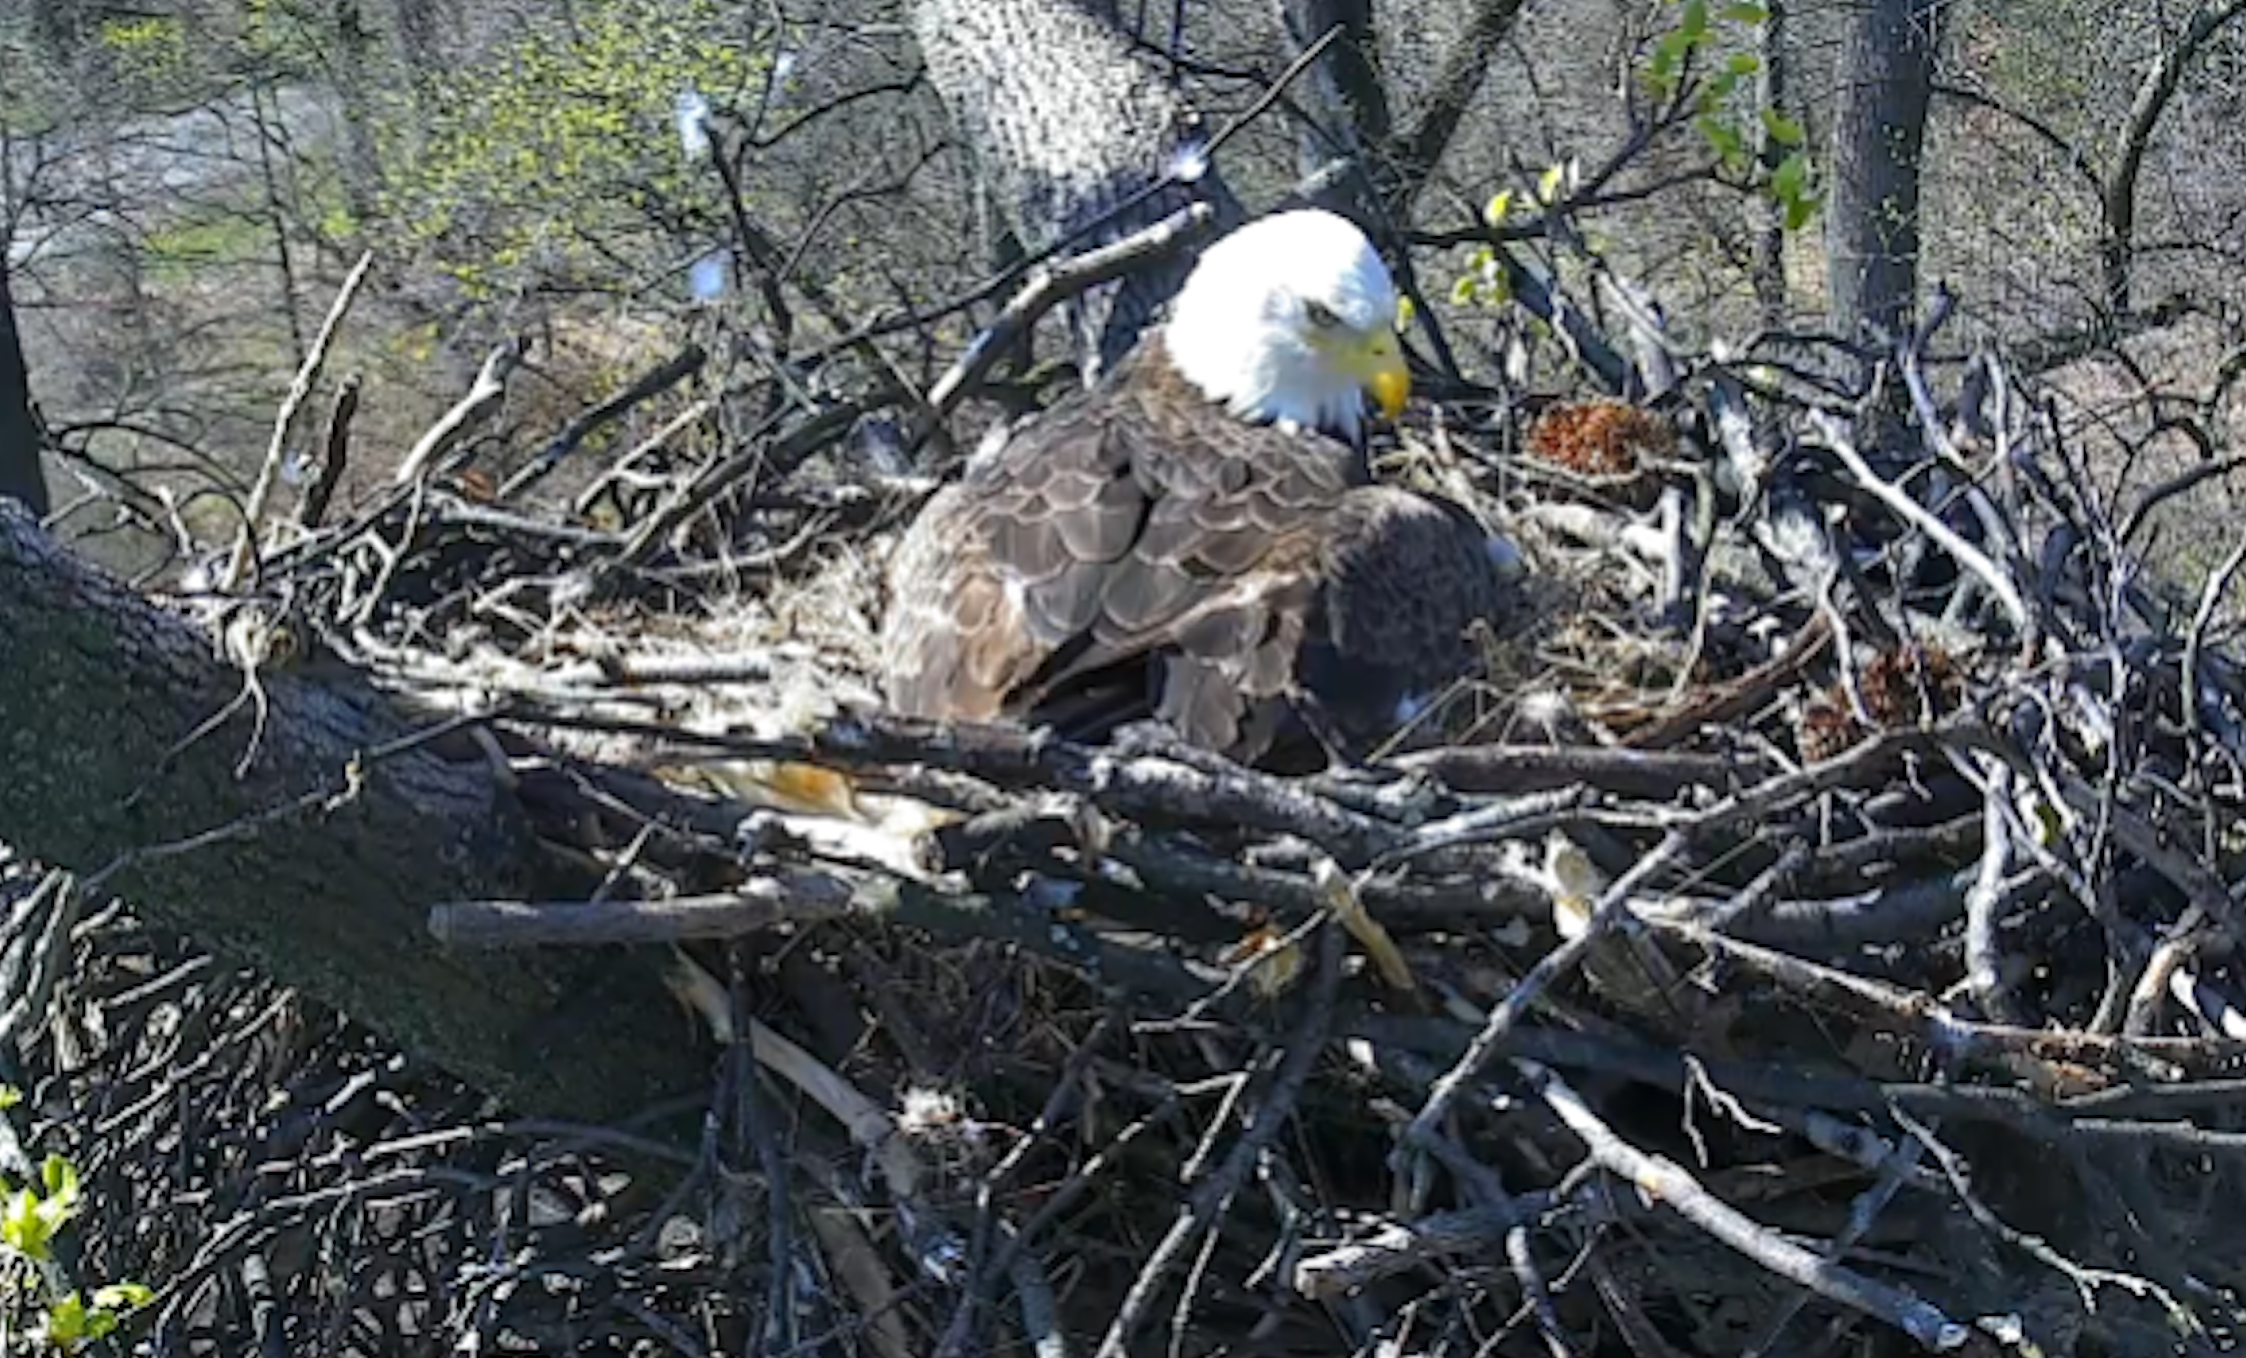 Bald eagle eggs about to hatch in Washington's National Arboretum